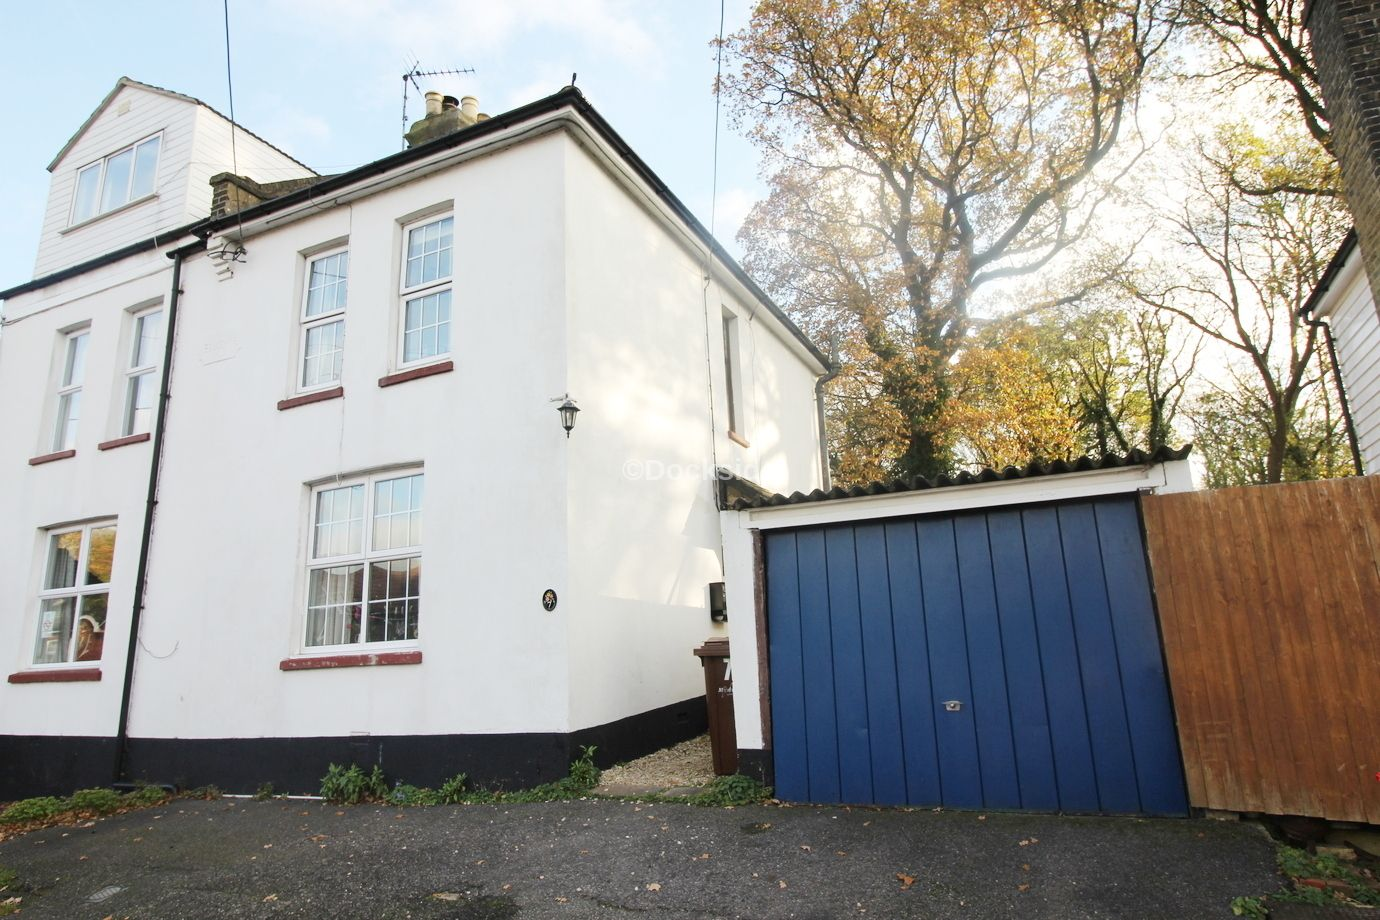 3 bed house for sale in Castle Street, ME2